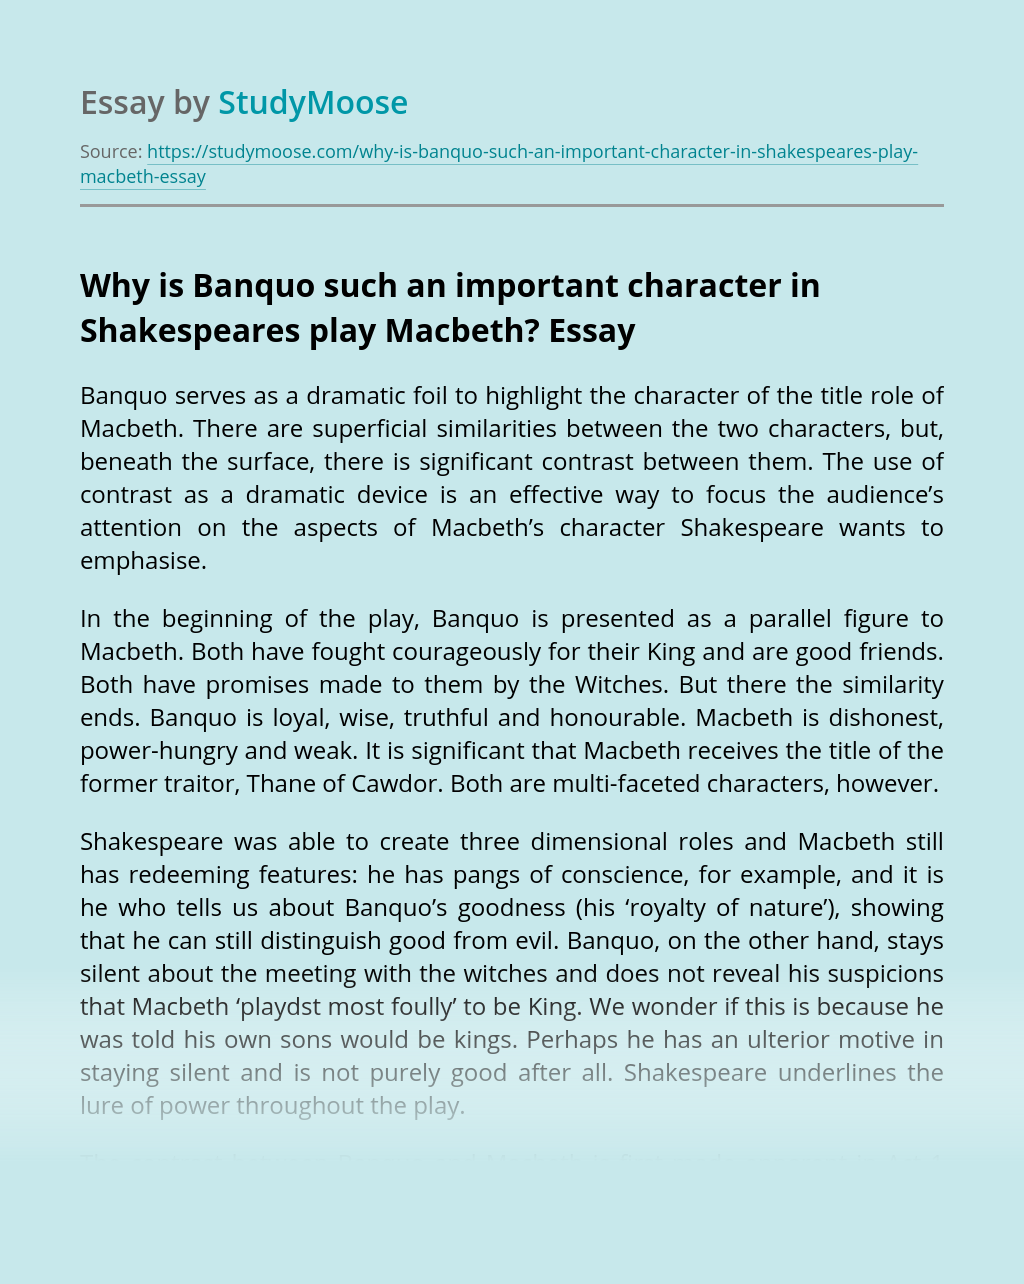 Why is Banquo such an important character in Shakespeares play Macbeth?